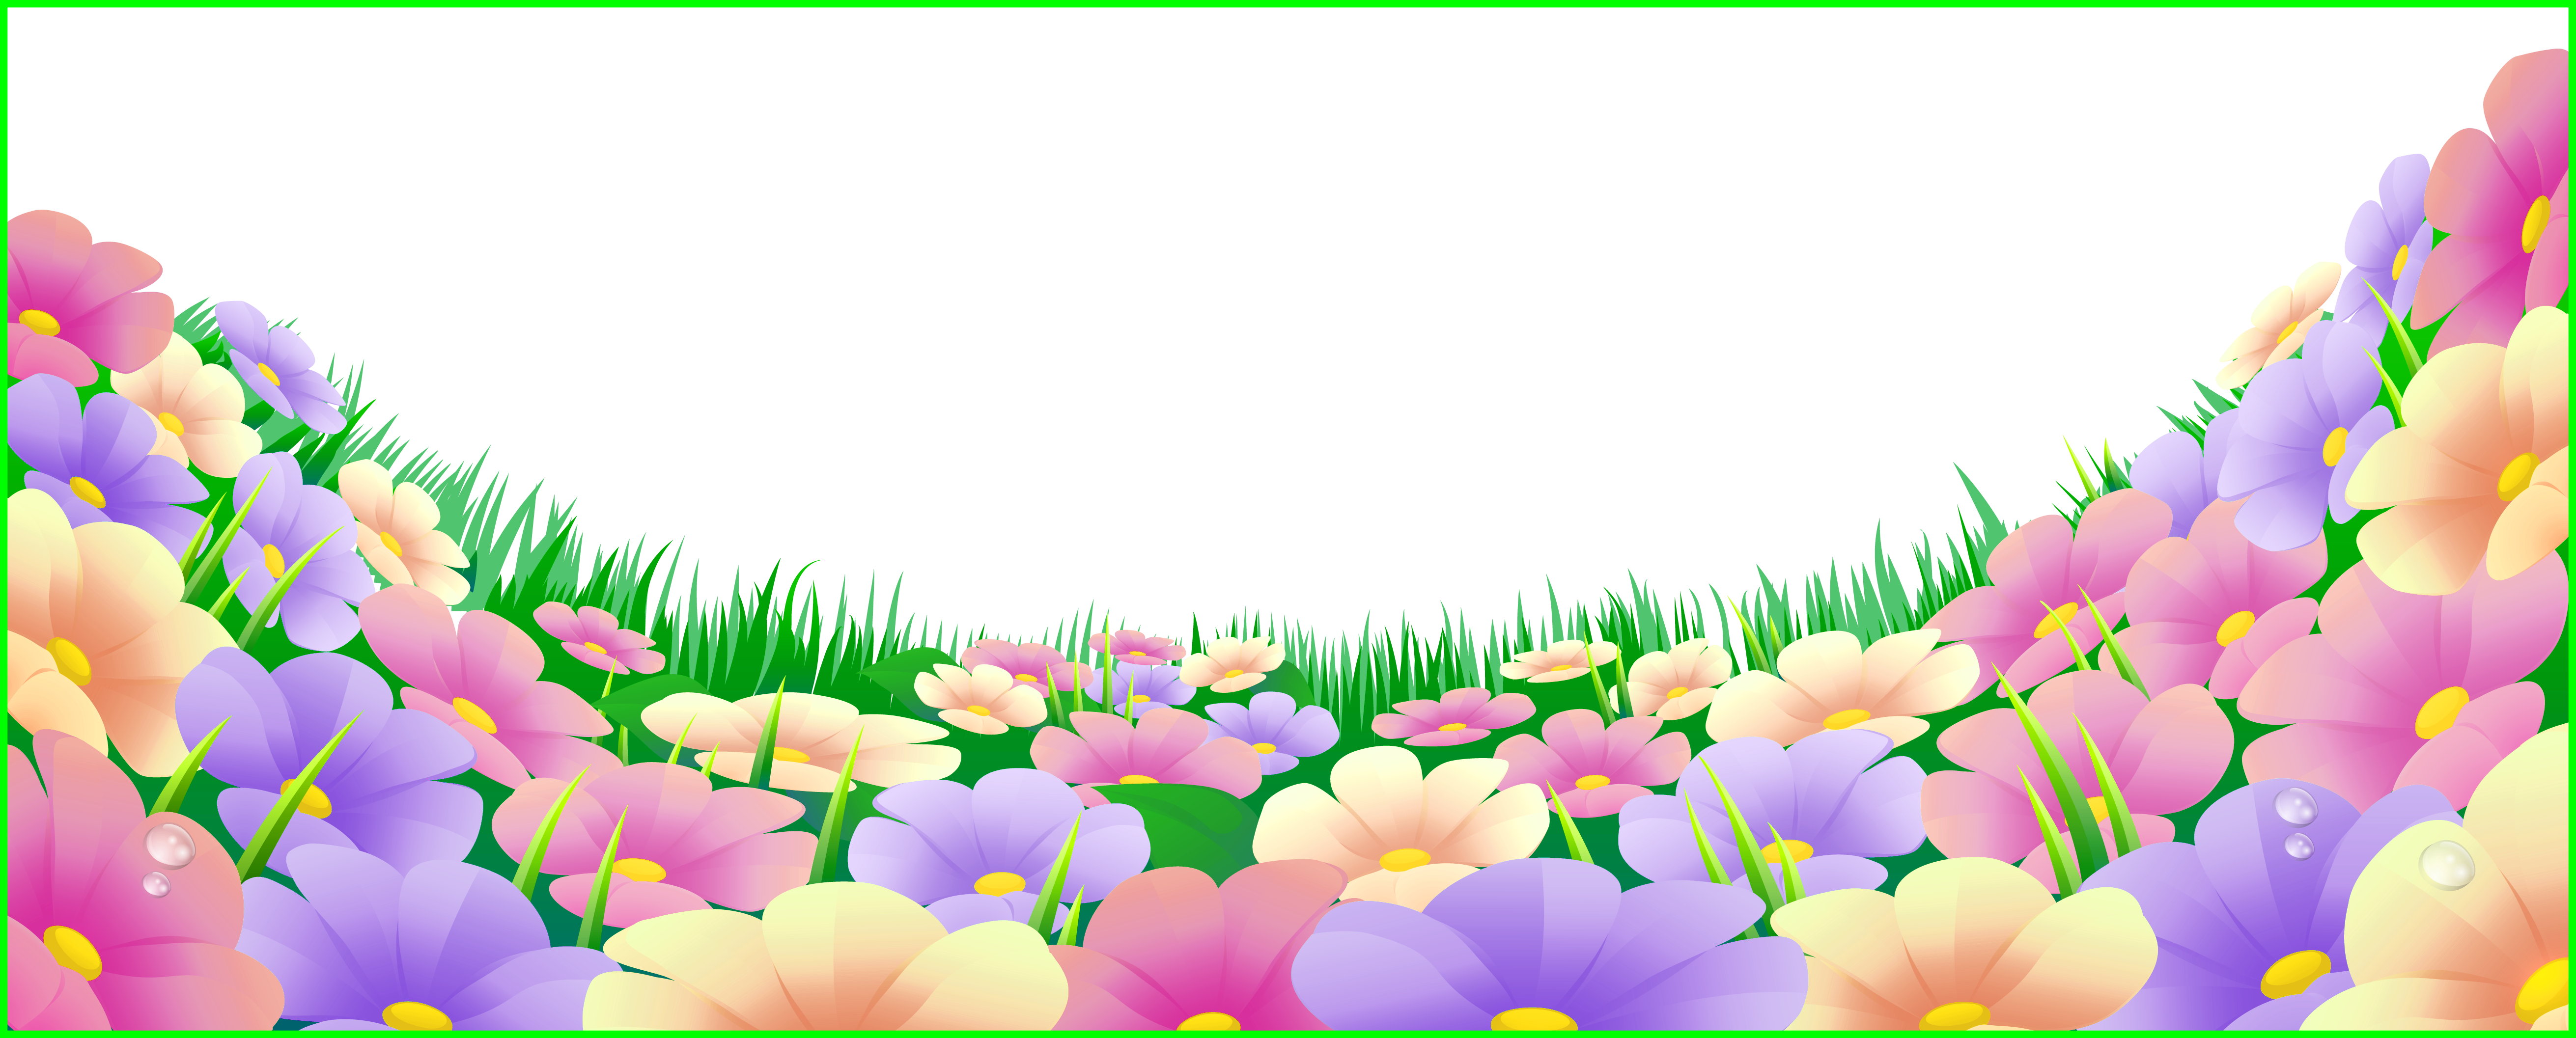 Inspiring with flowers png. Clipart grass butterfly